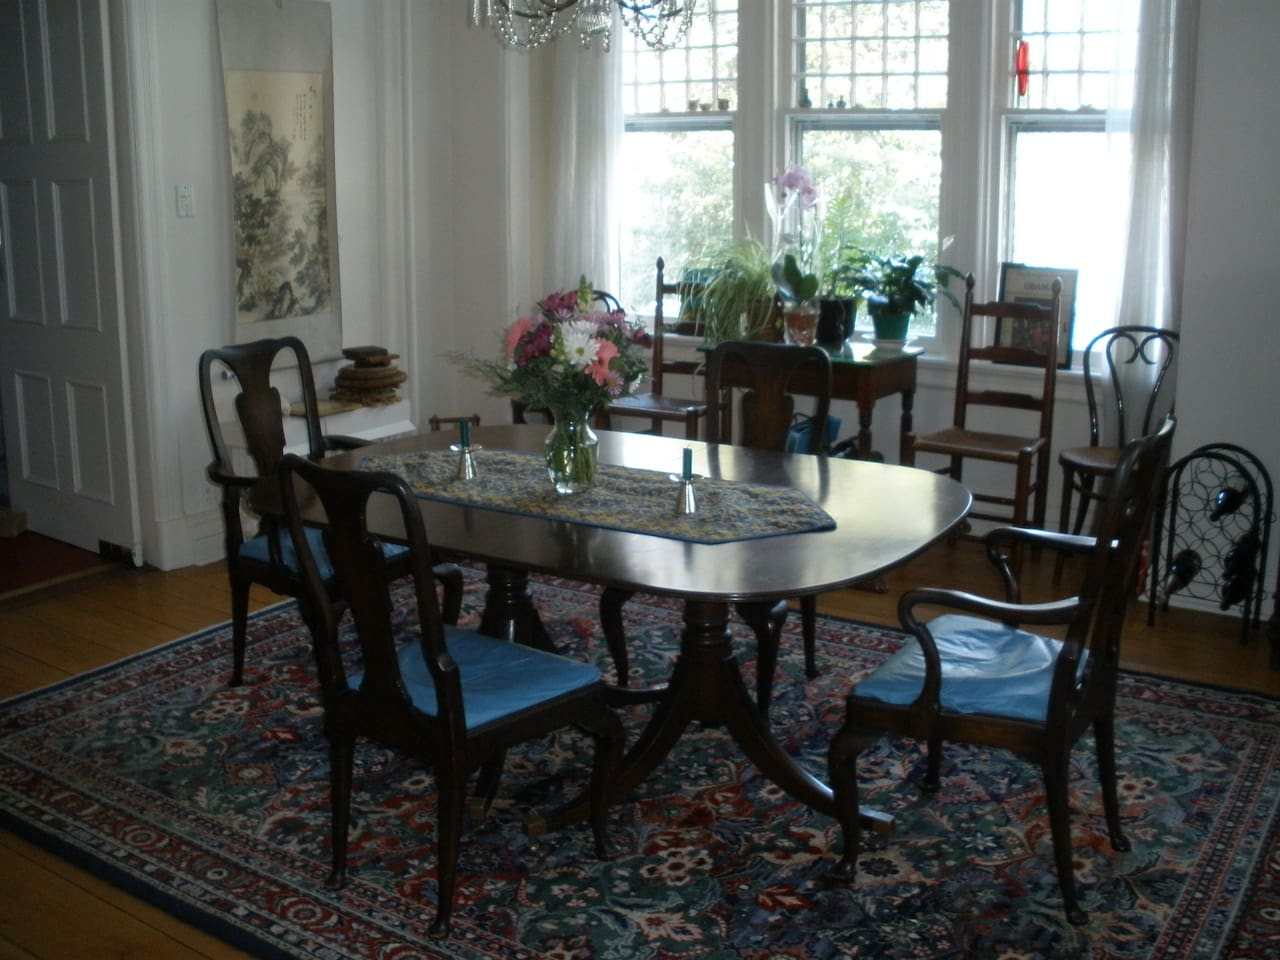 Dining room with many windows and generous space to seat six